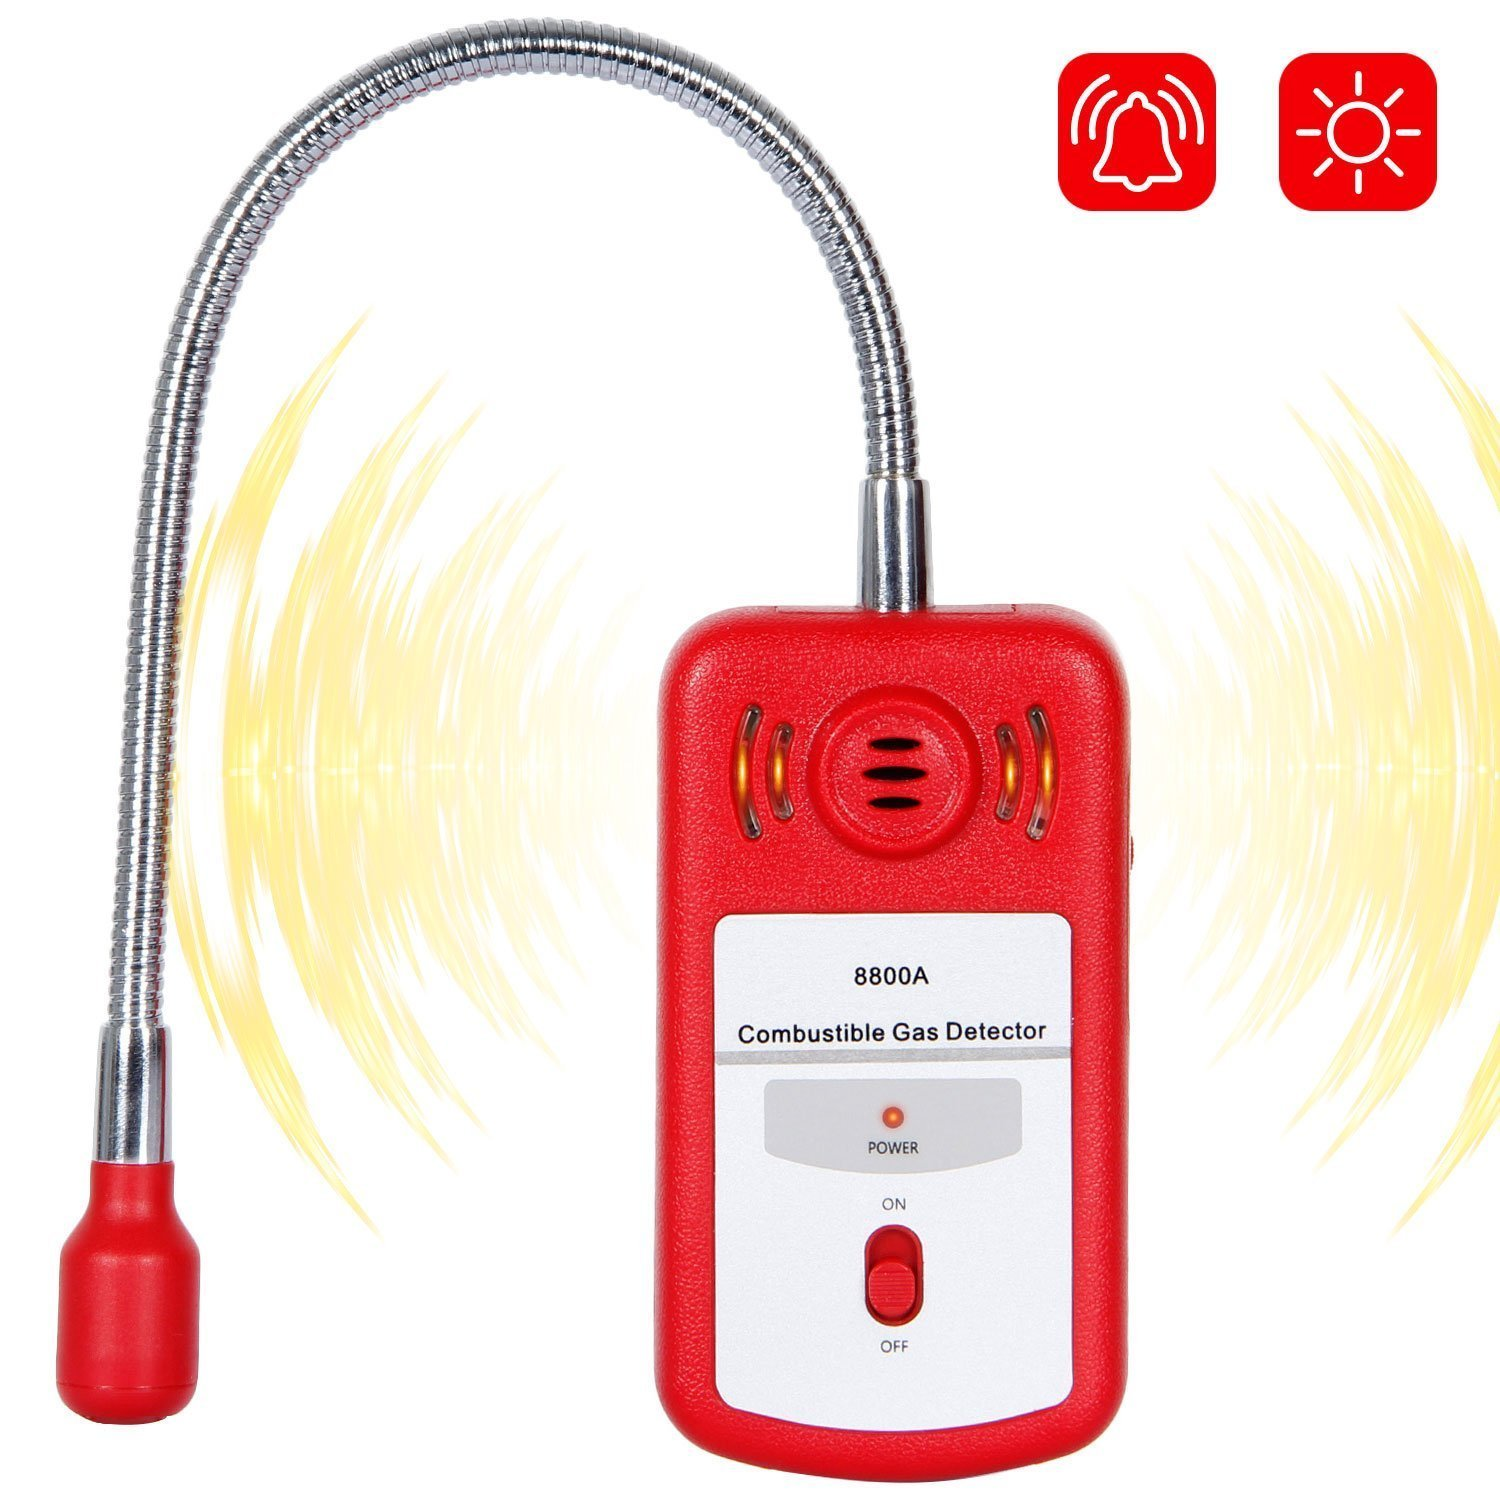 Combustible Gas Detector Portable Gas Leak Location Determine Tester with Sound-Light Alarm